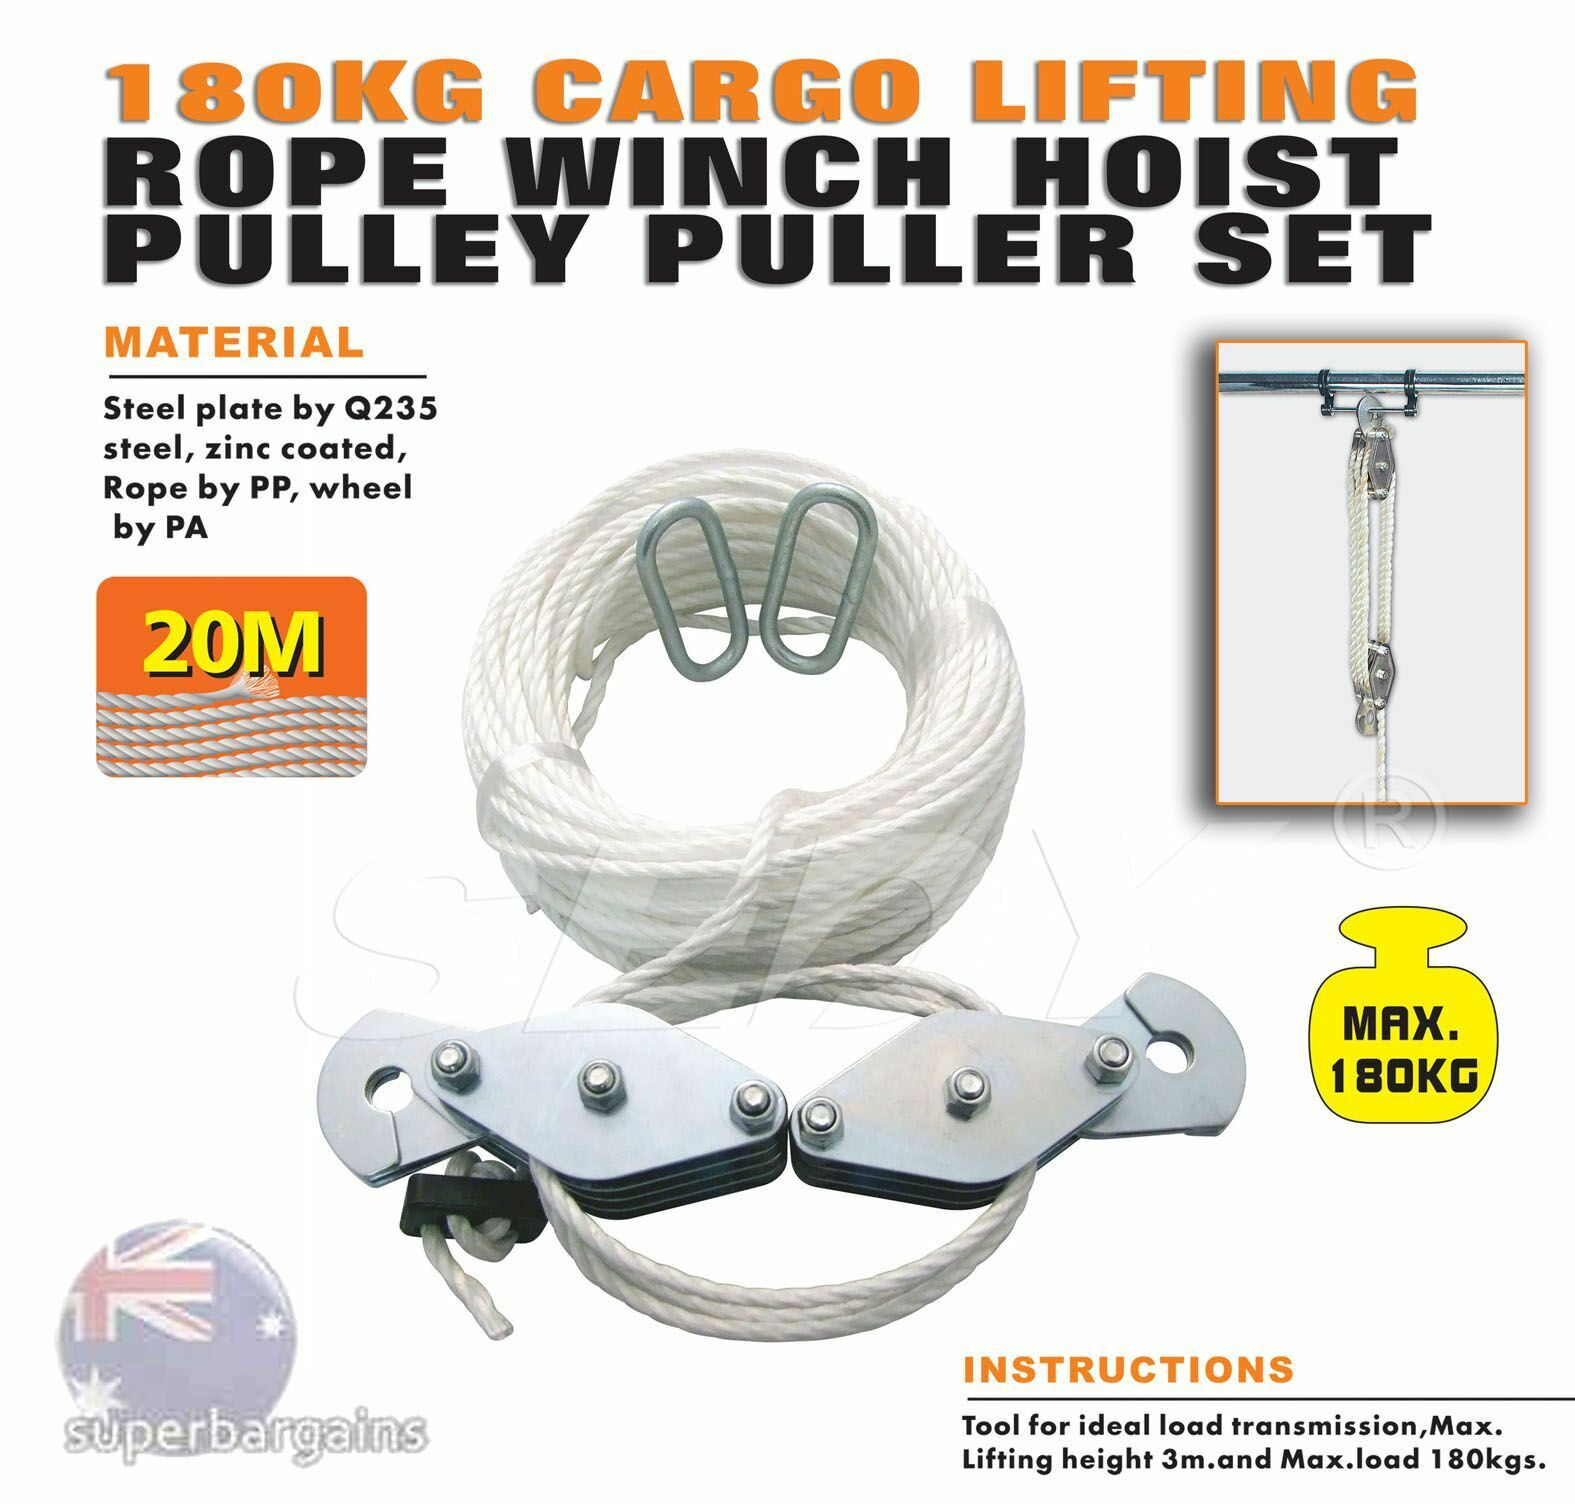 Rope Pulley Drive : Kg cargo lifting rope winch hoist pulley puller set